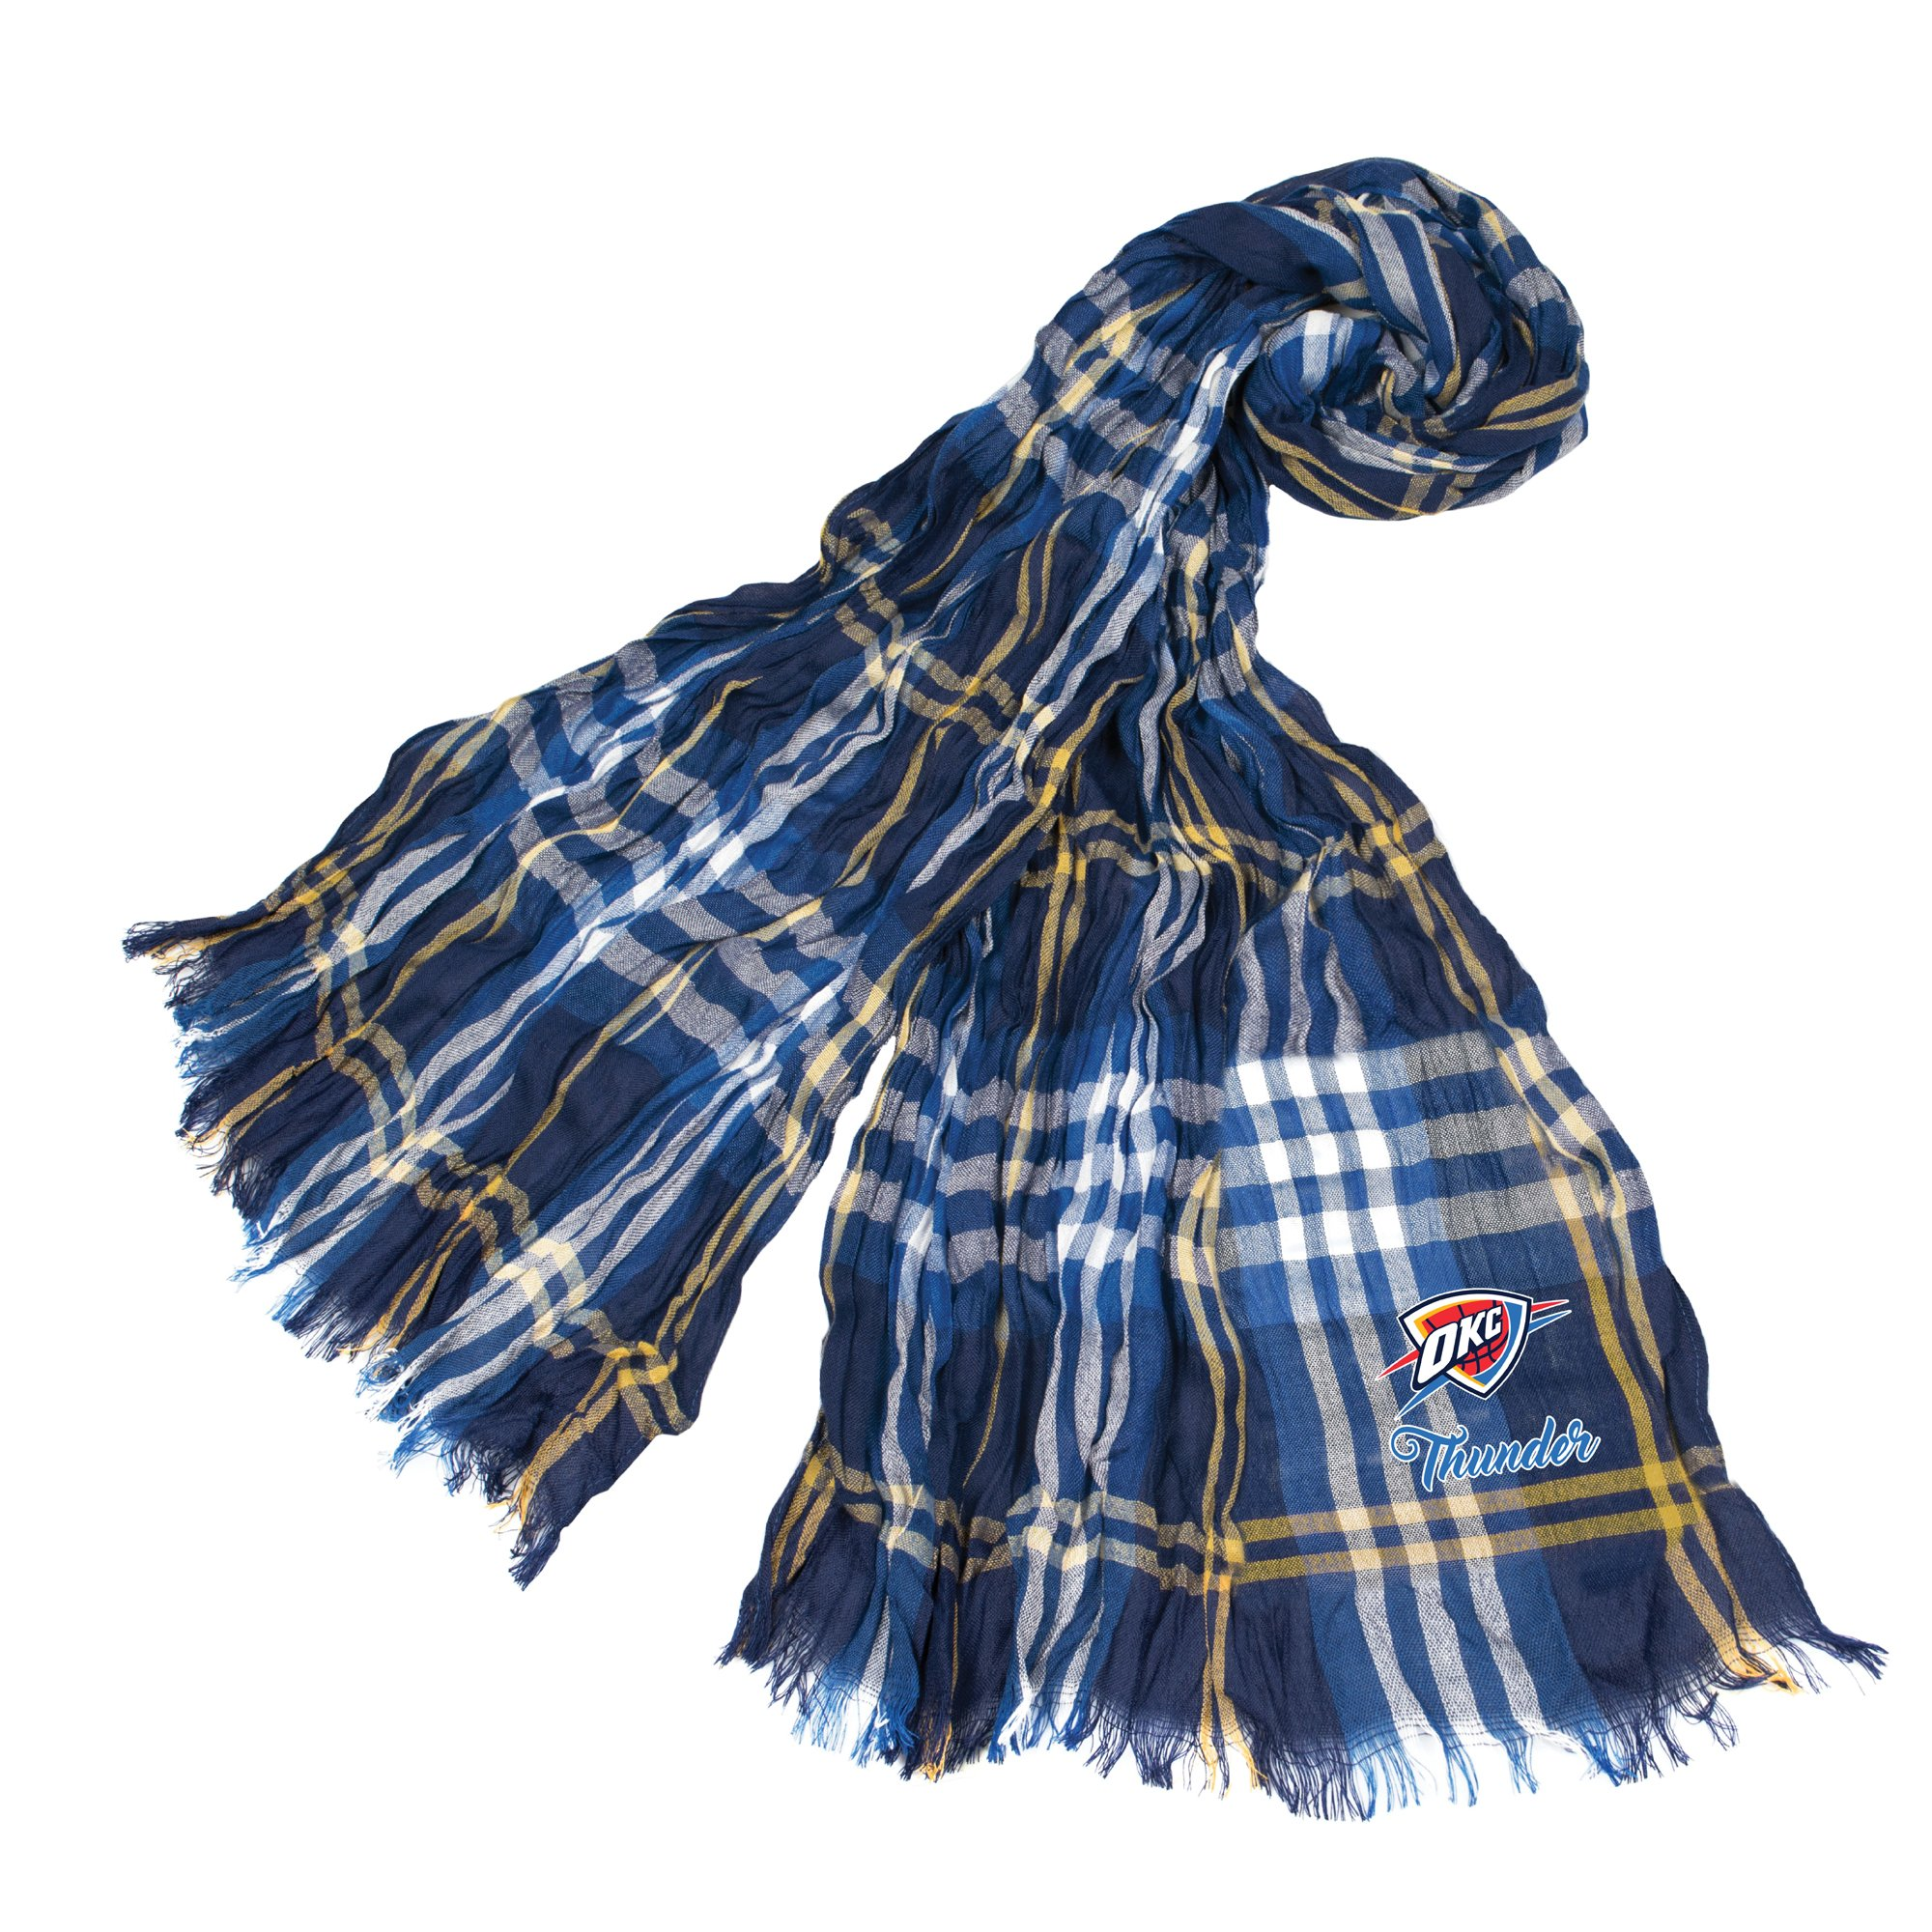 Littlearth NBA Oklahoma City Thunder Sheer Infinity Plaid Scarf by Littlearth